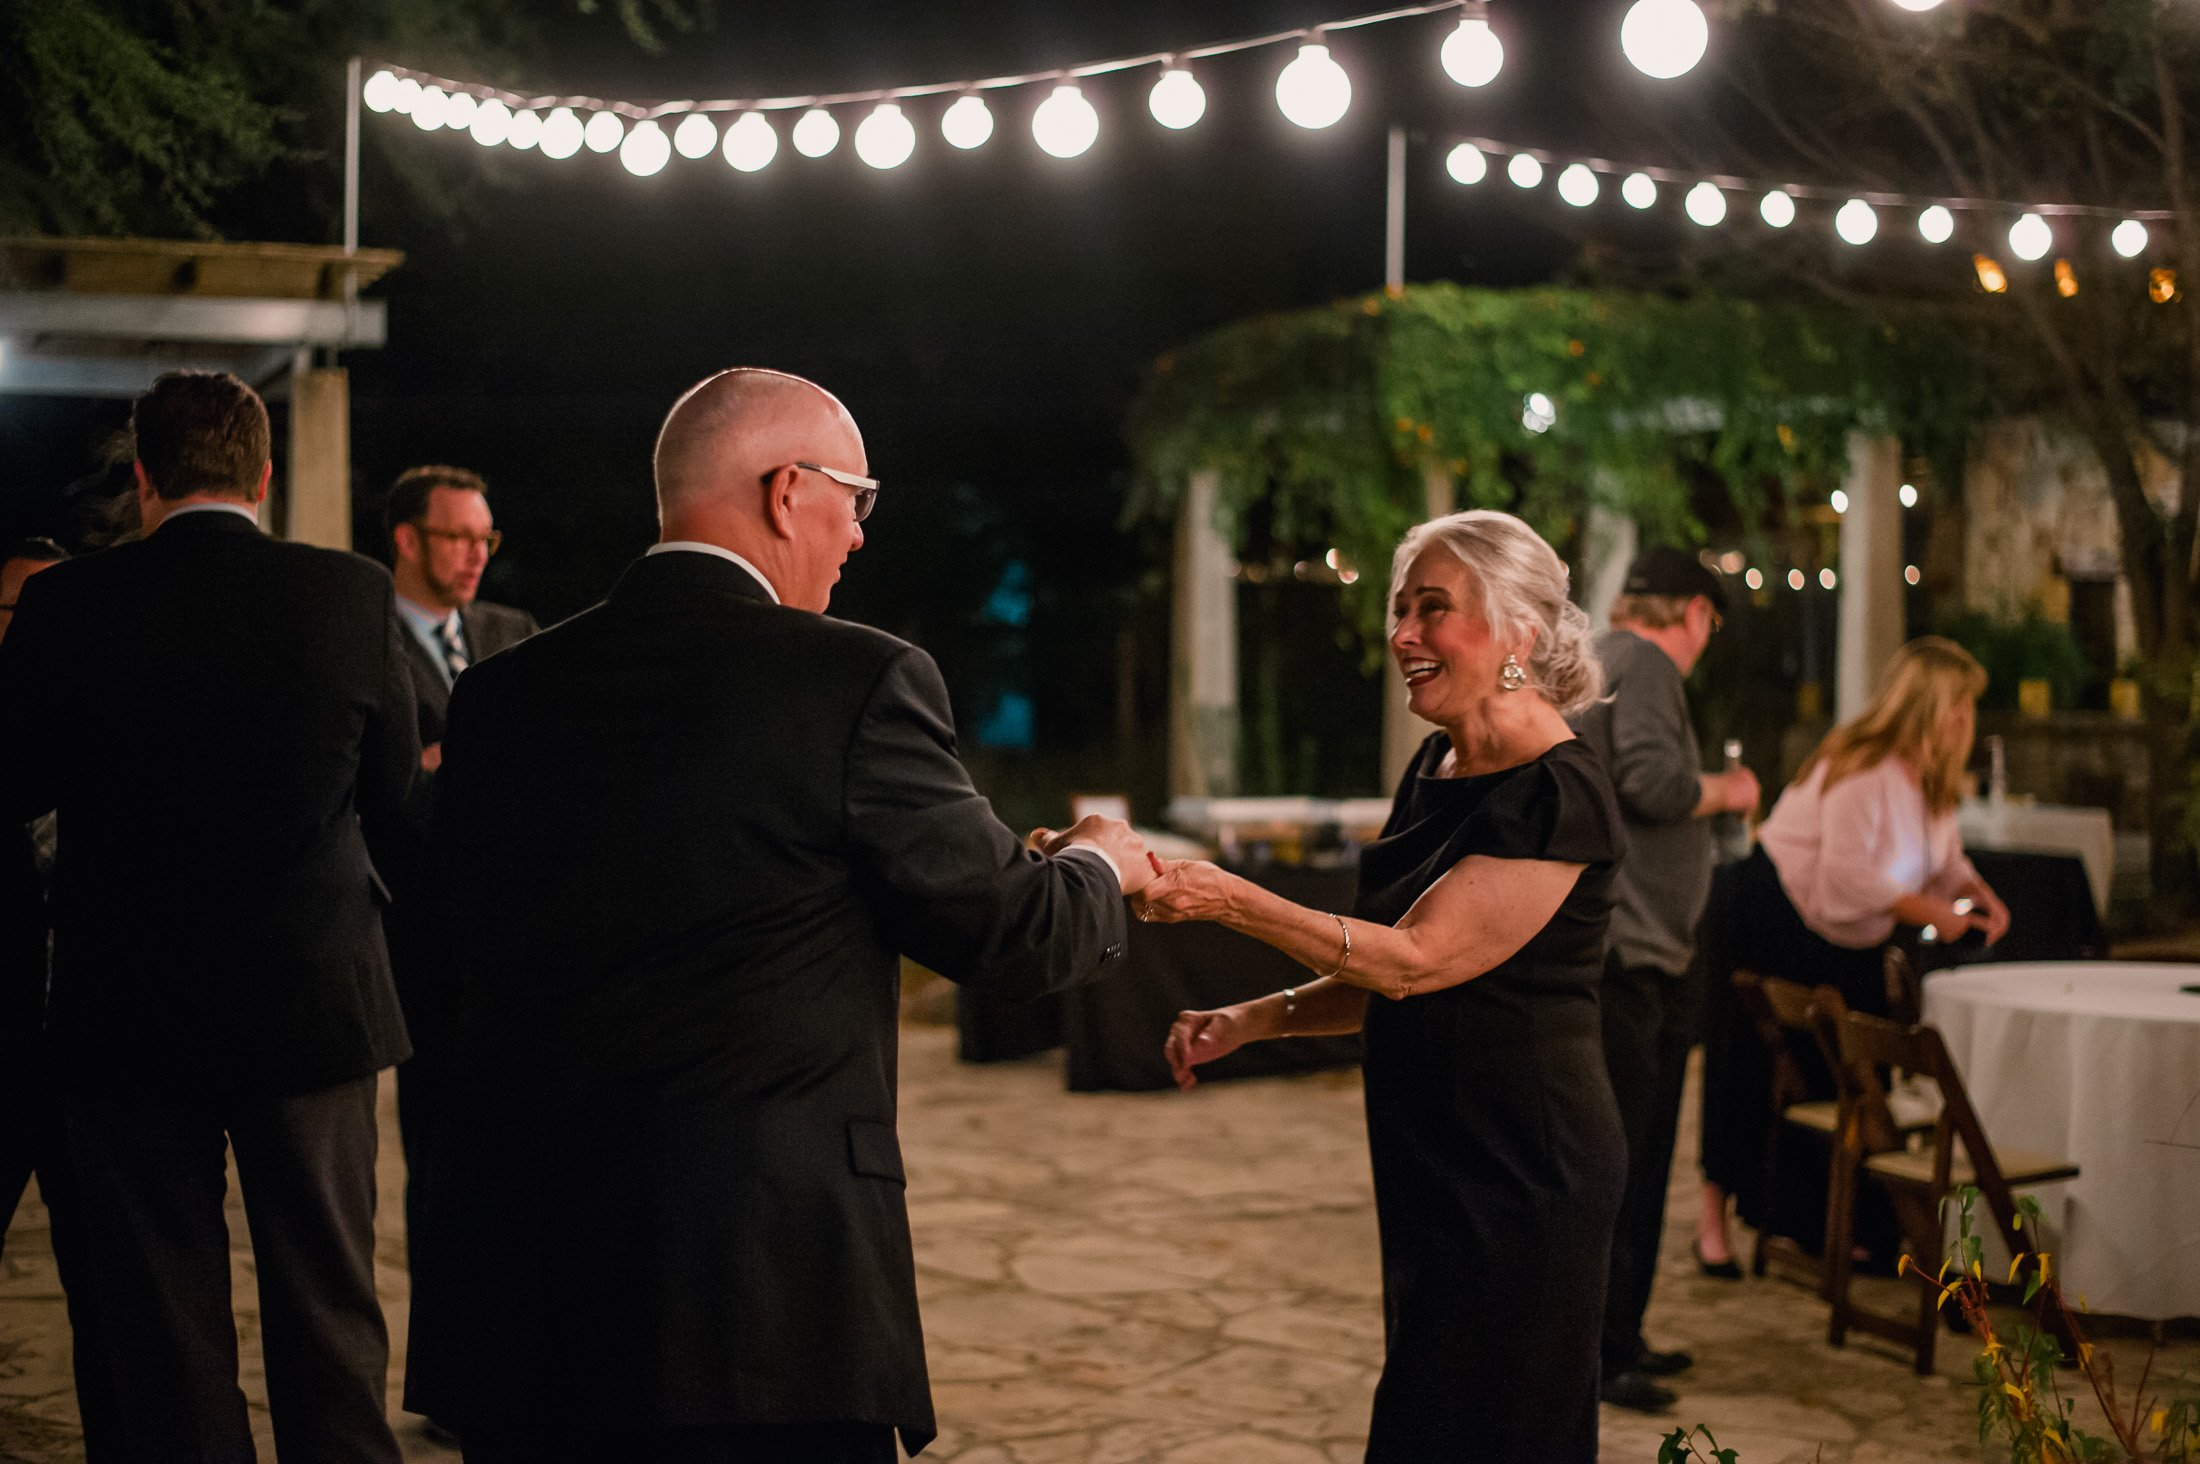 couples dance under string lights at an outdoor austin wedding